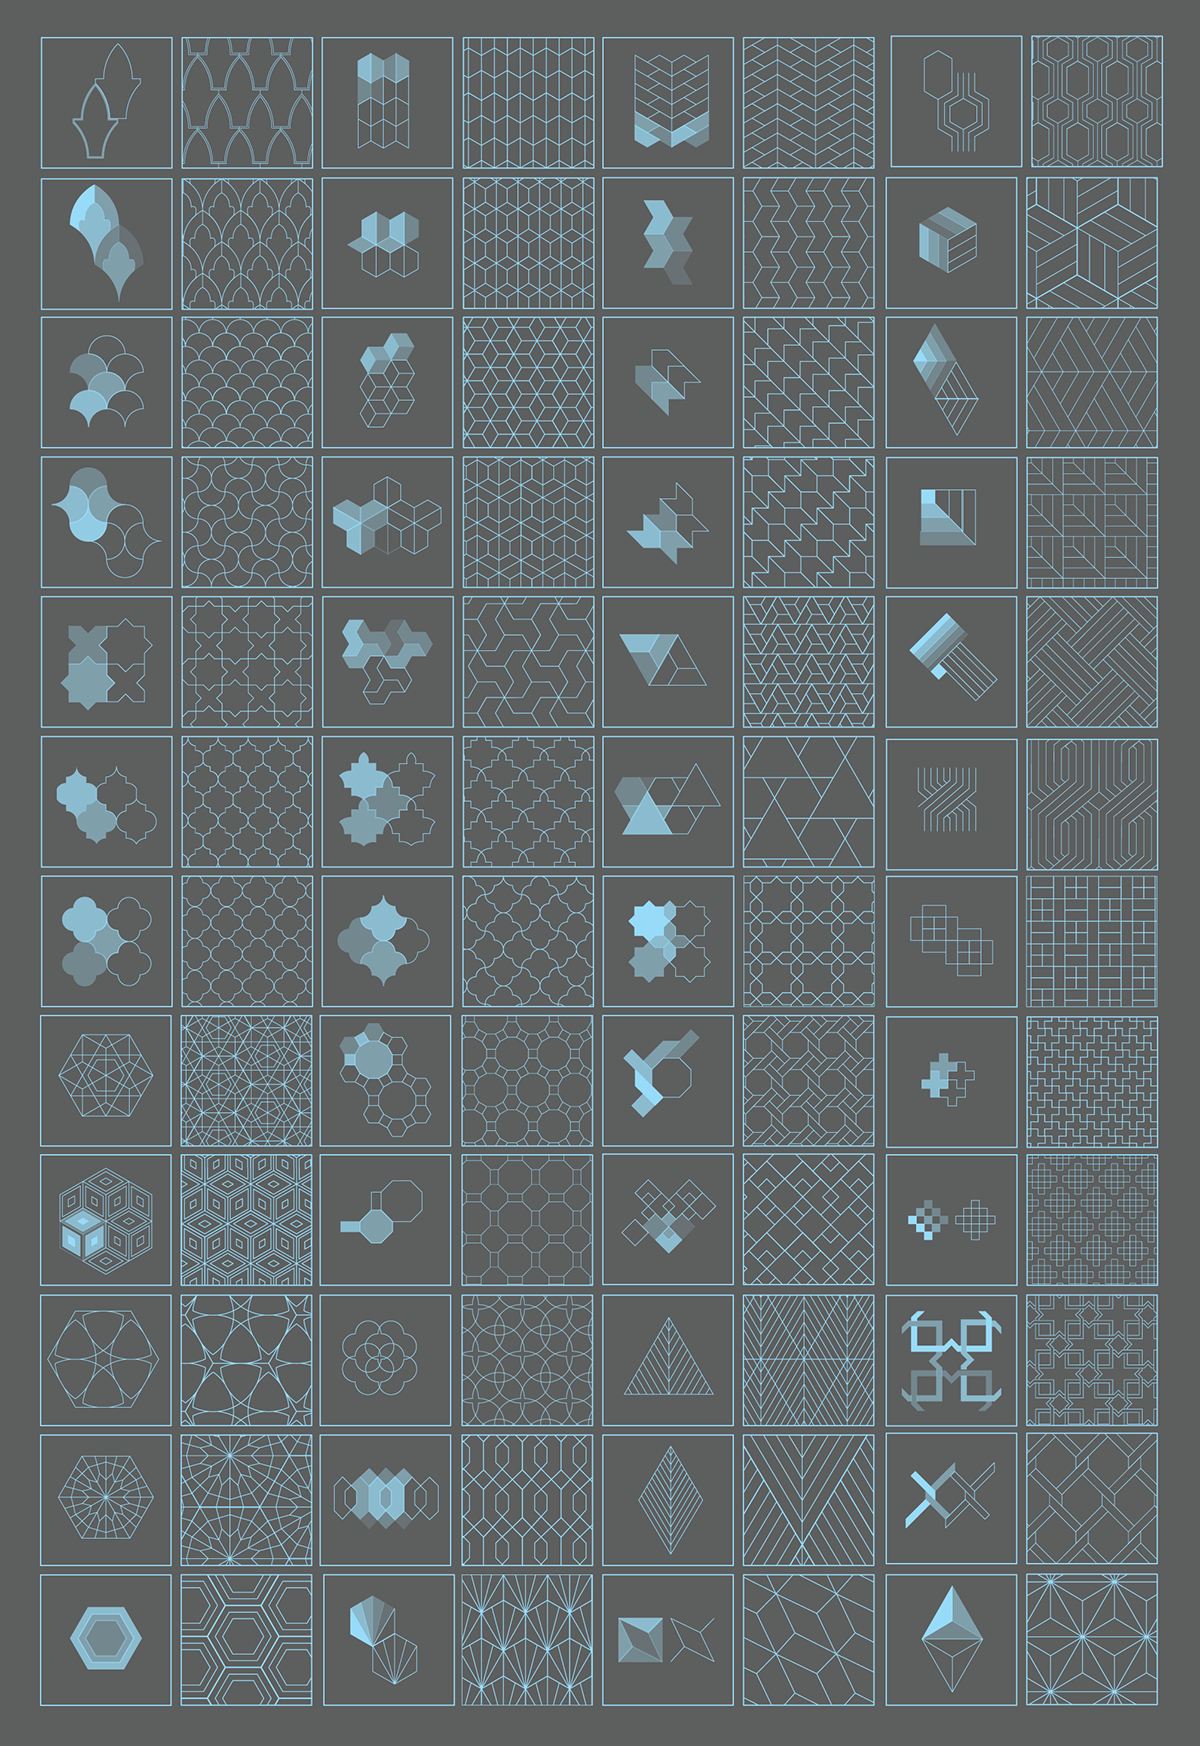 Pattern Cheat Sheet (WIP)